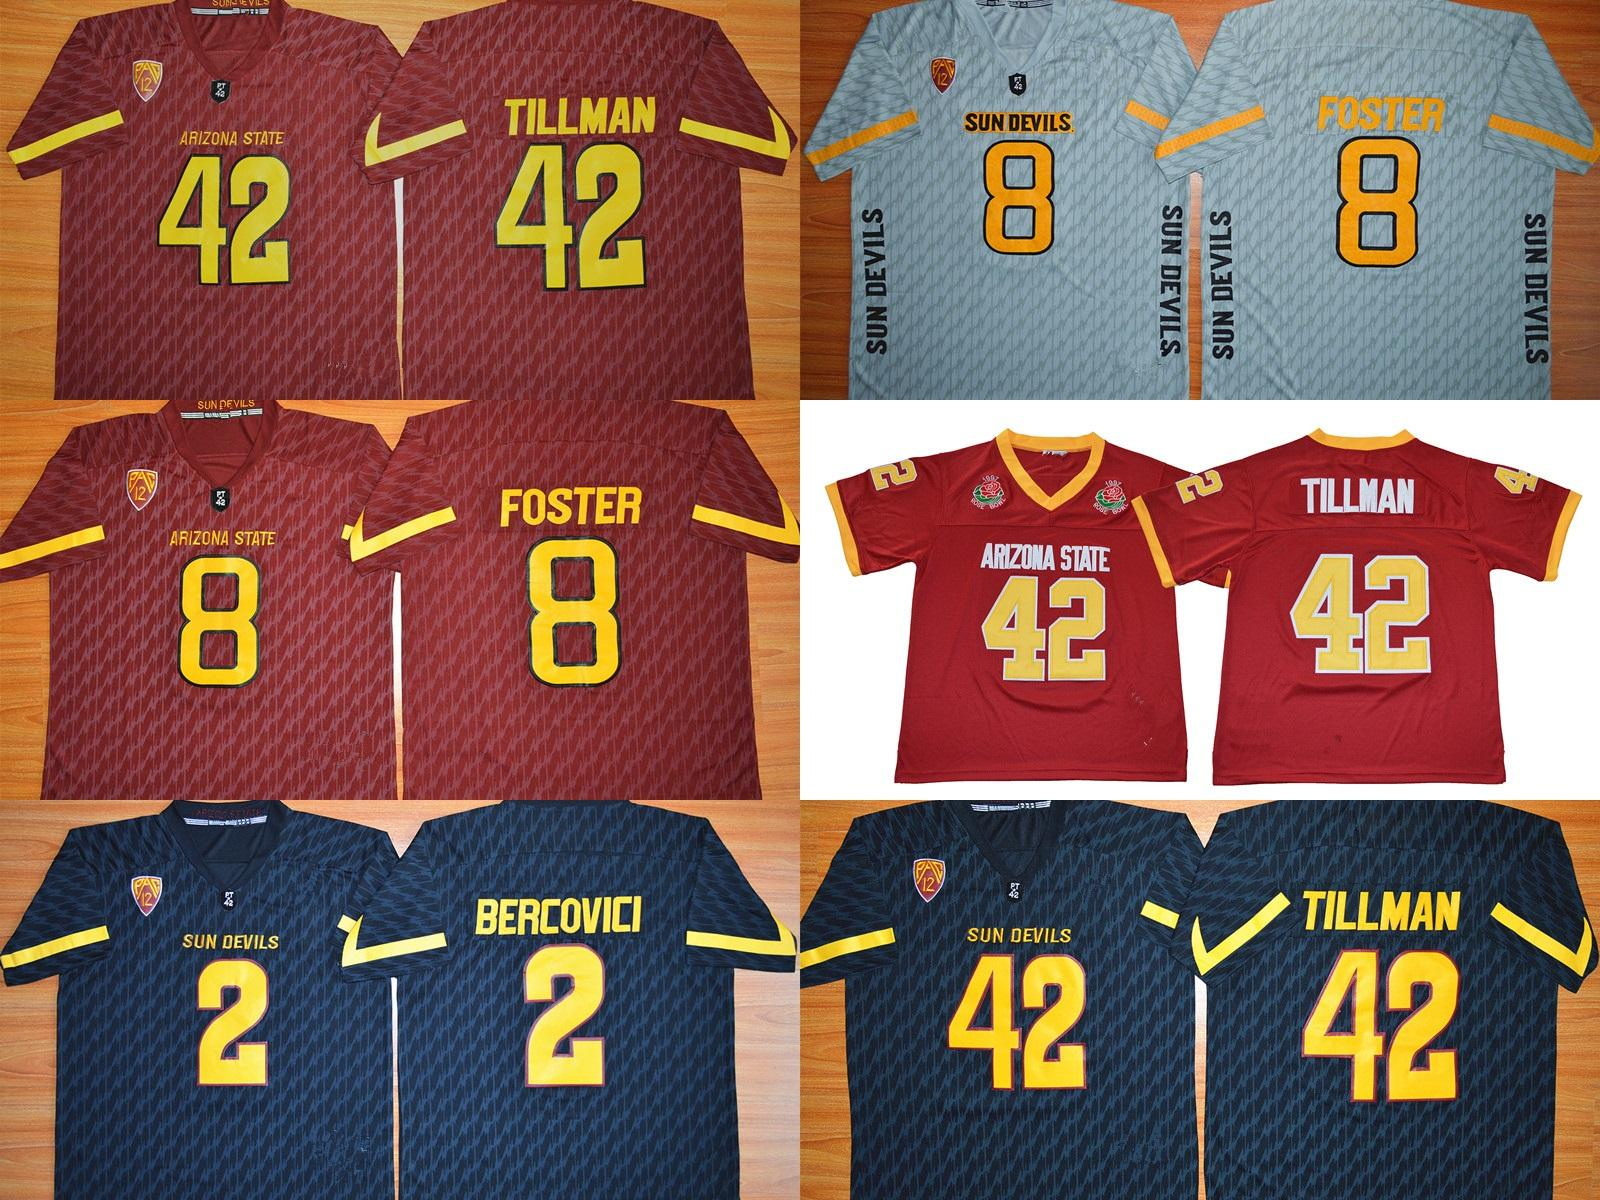 huge discount 5334f 77156 Factory Outlet- NCAA Arizona State Sun Devils Tillman 42 Bercovici 2 D.J.  Foster 8 Embroidery Logos College Football Jerseys, Mix Order